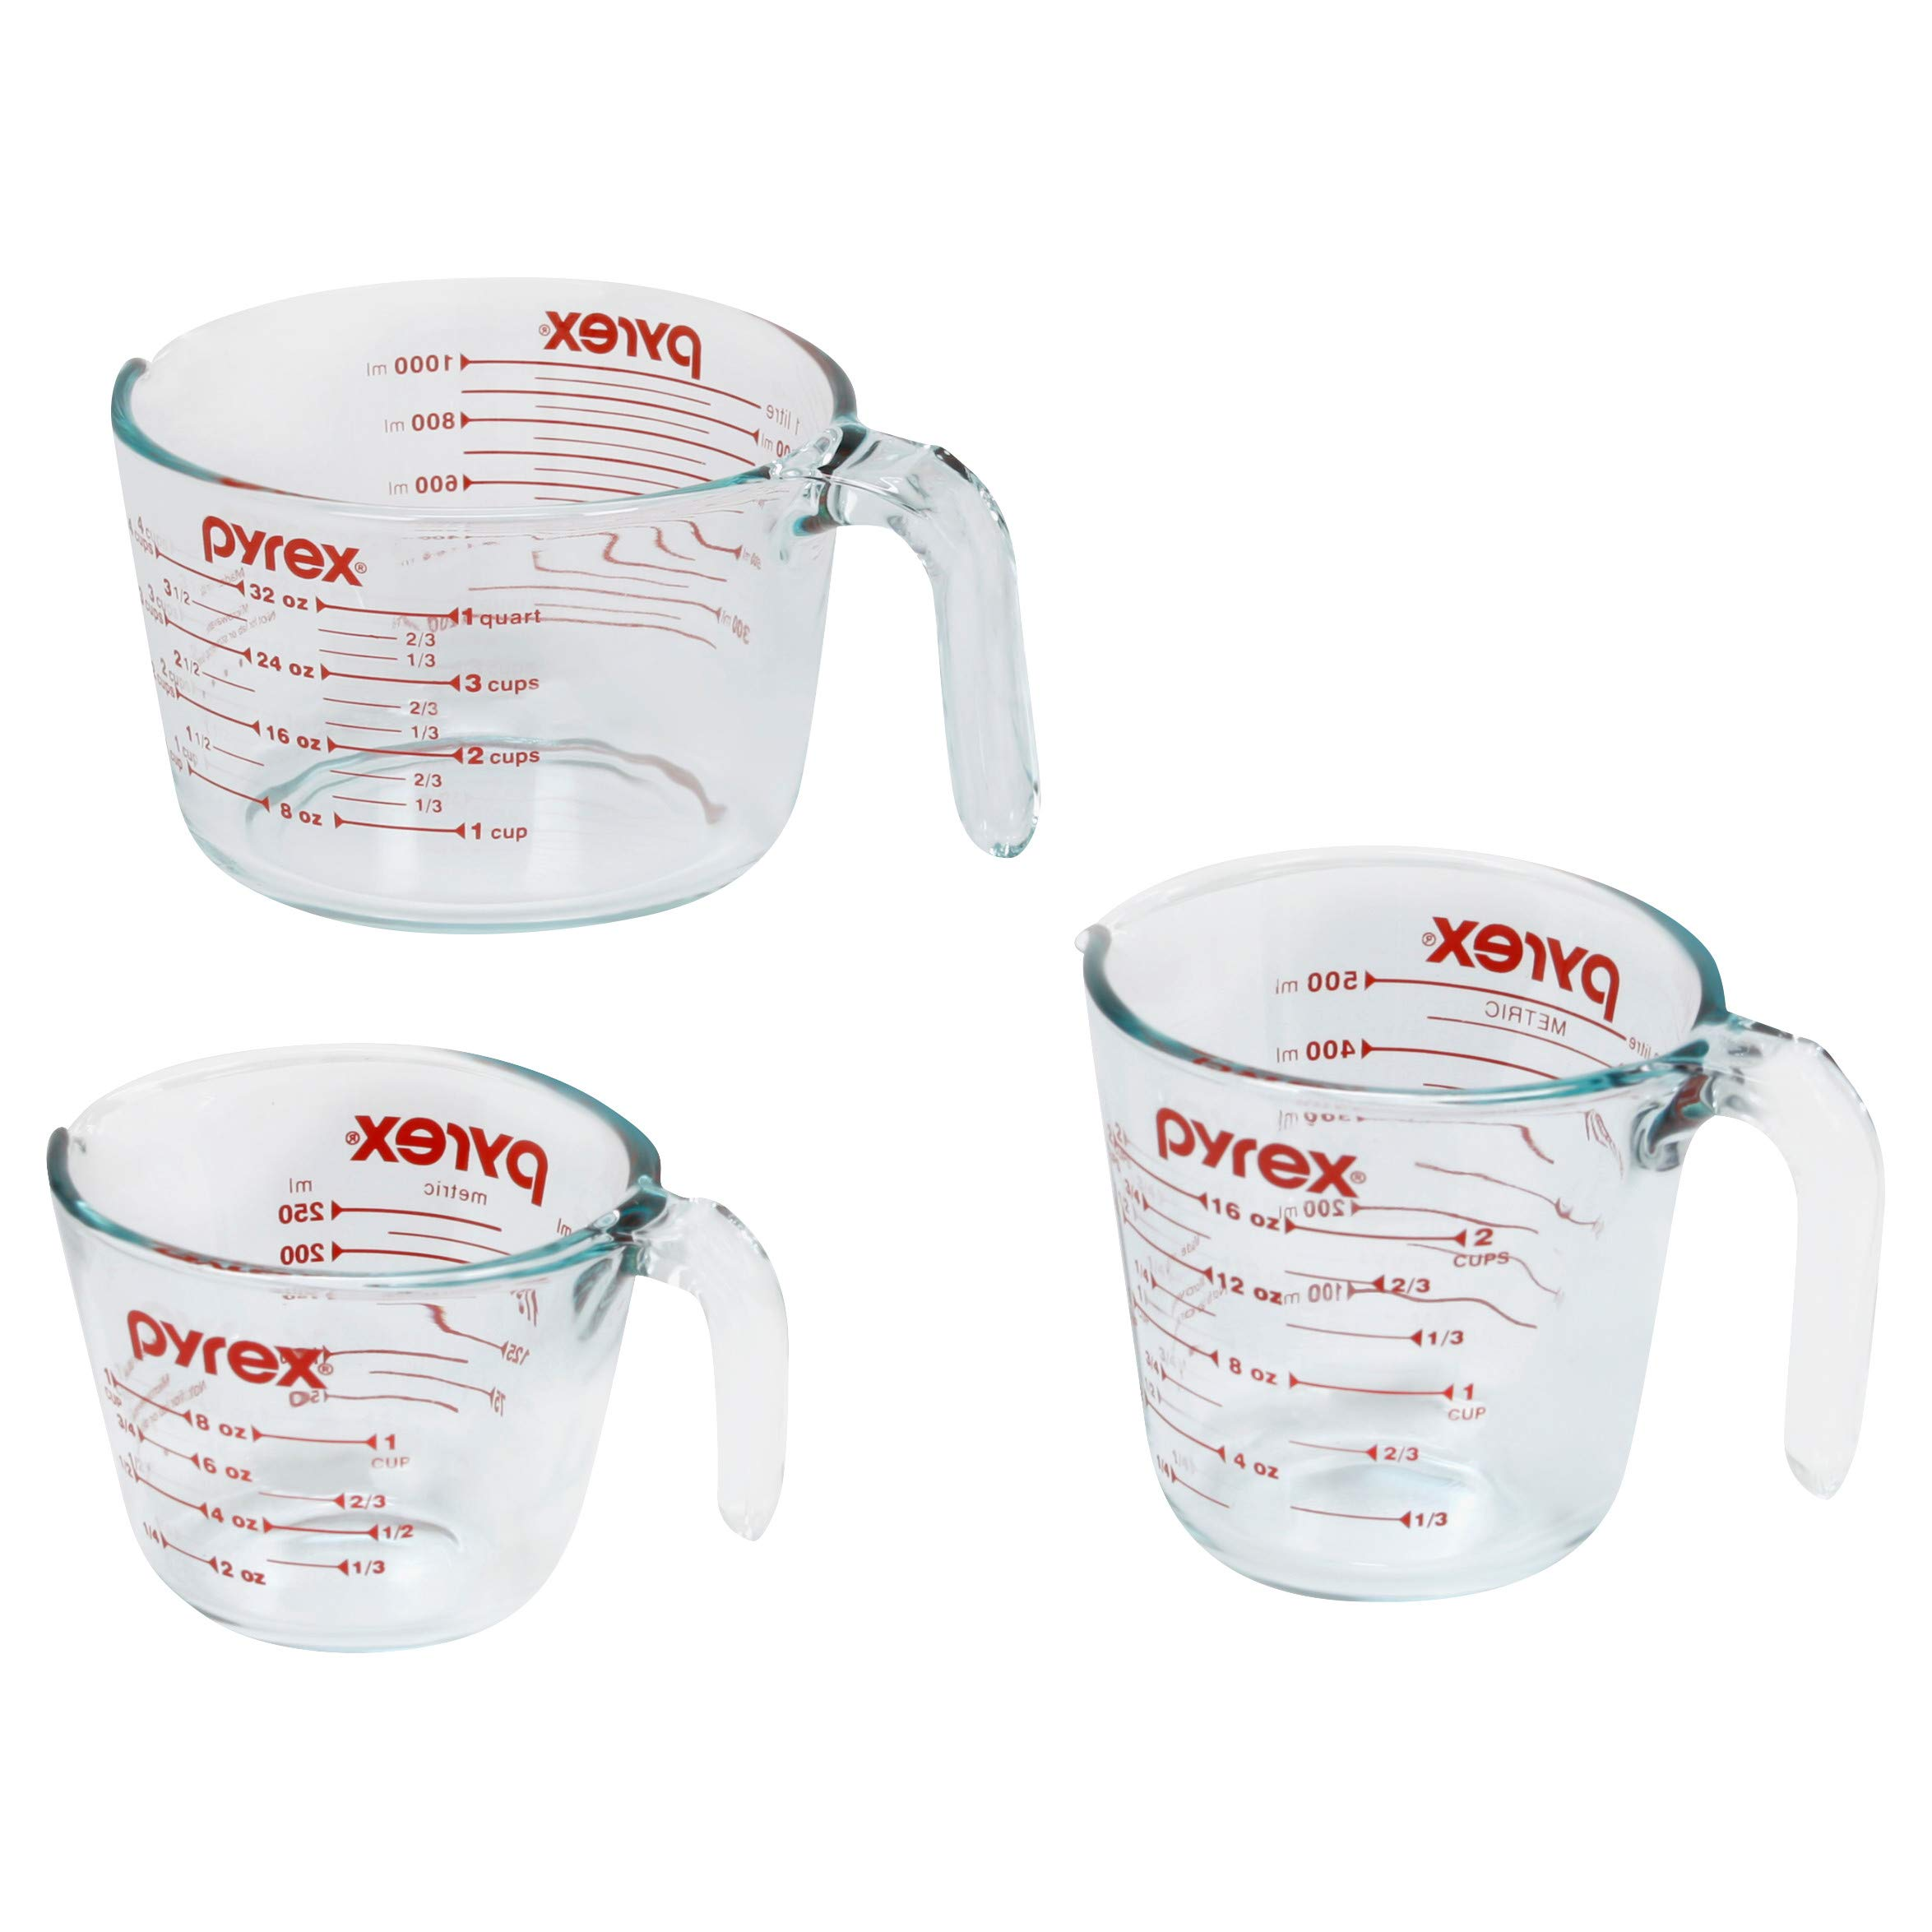 Pyrex Measuring Cups, 3-Piece, Clear by Pyrex